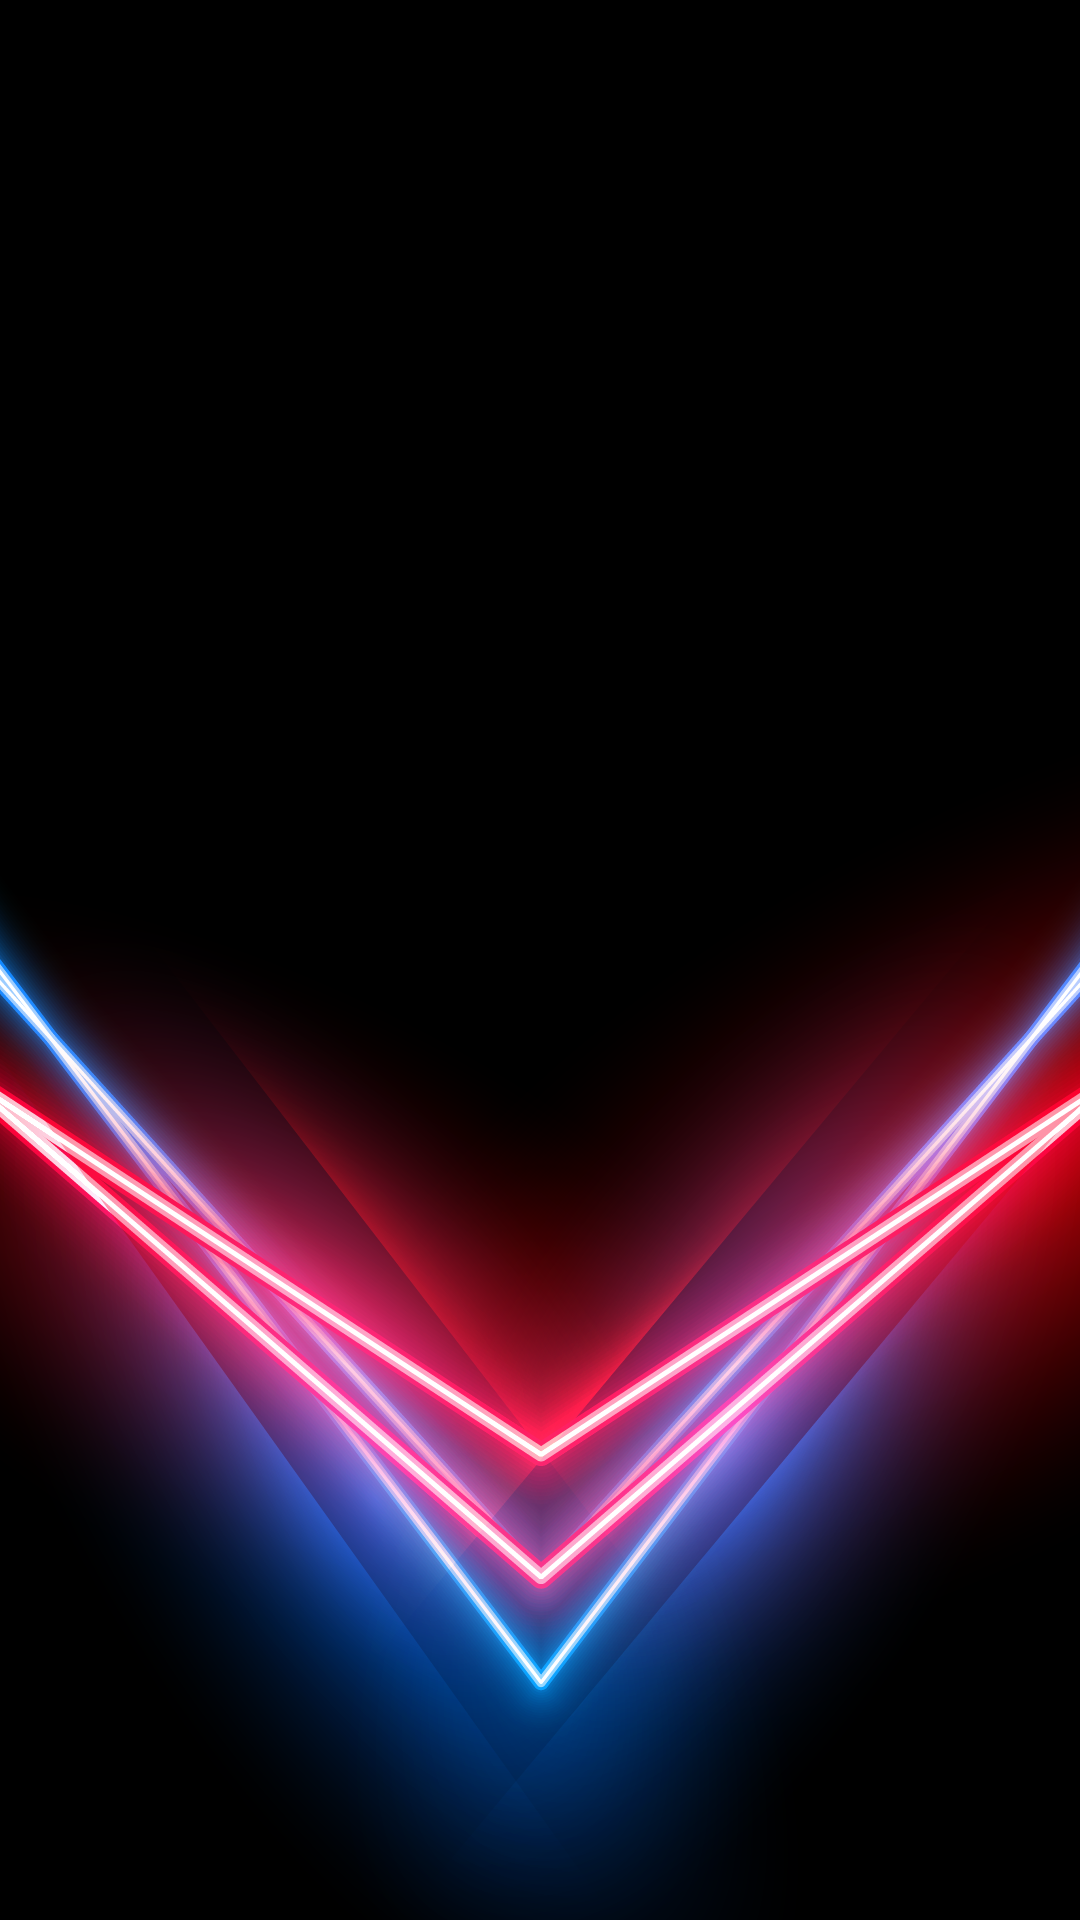 amoled neon lines background wallpaper 4k